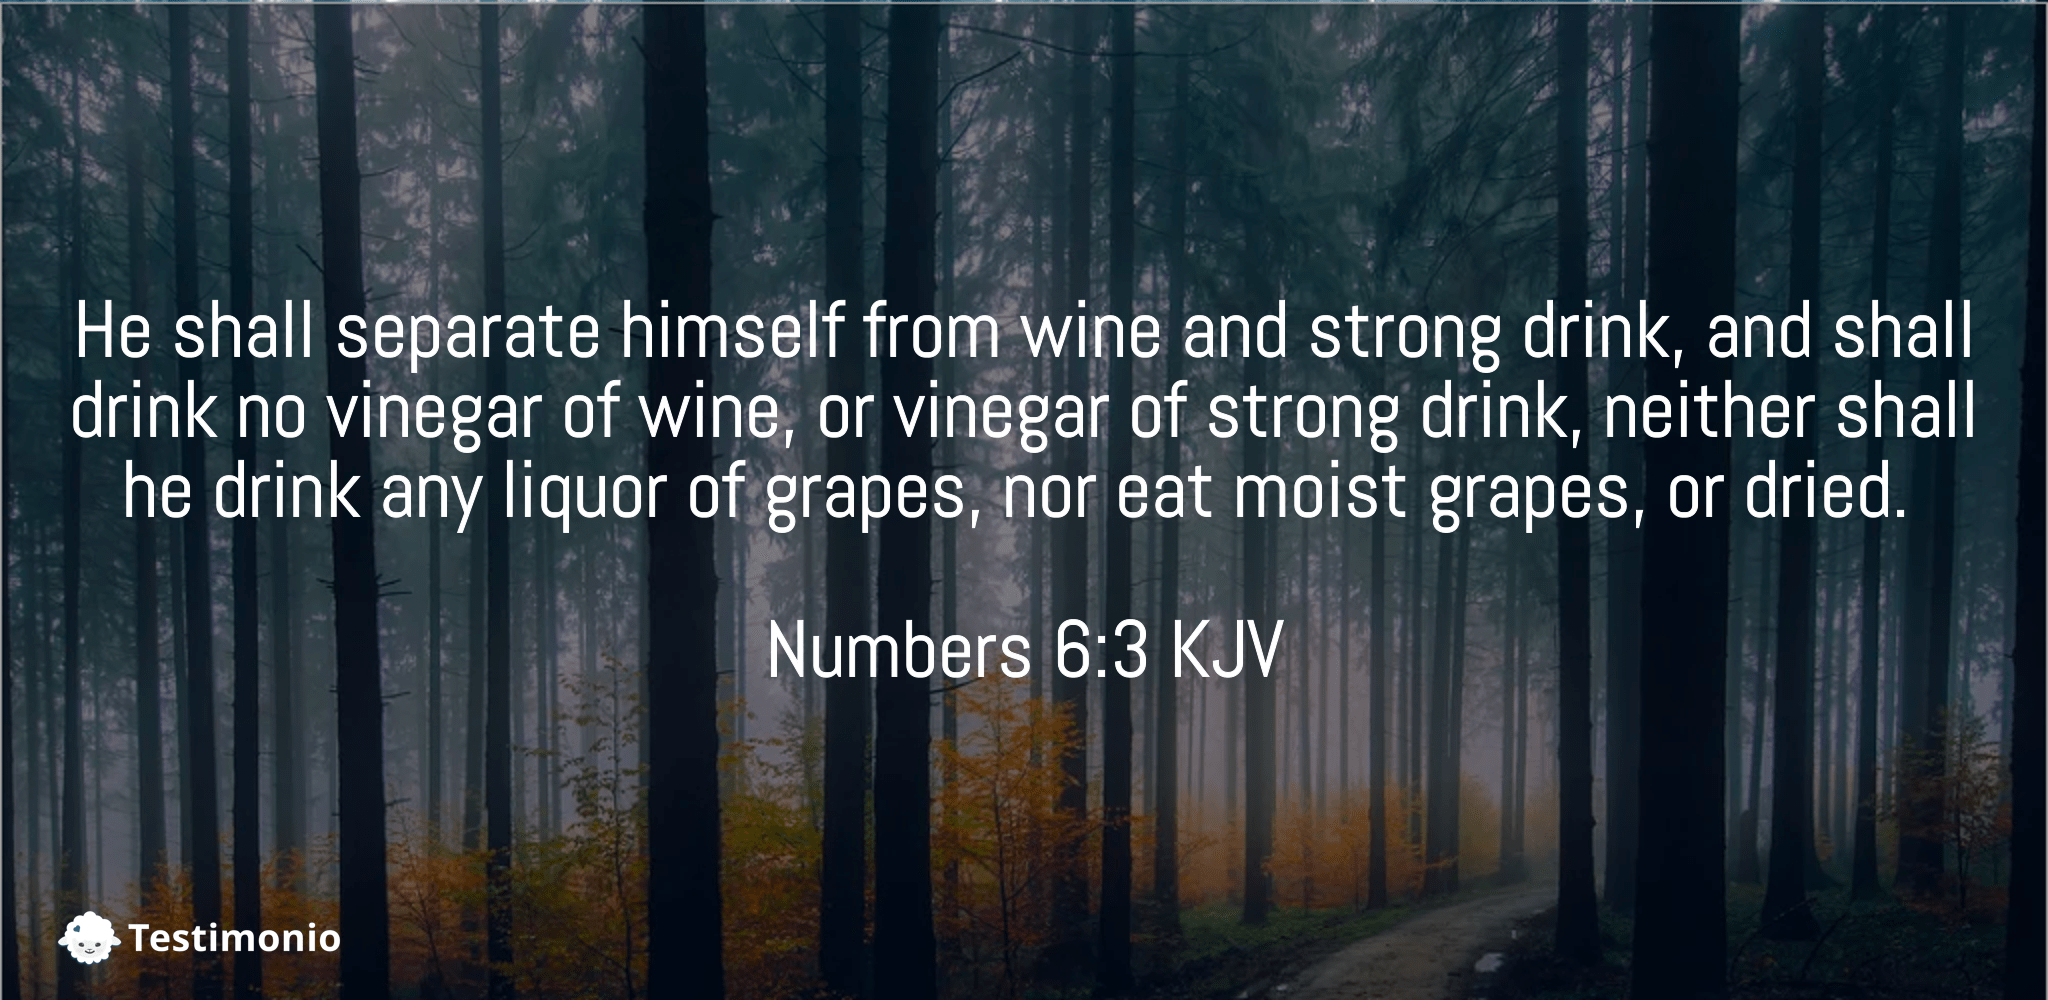 Numbers 6:3